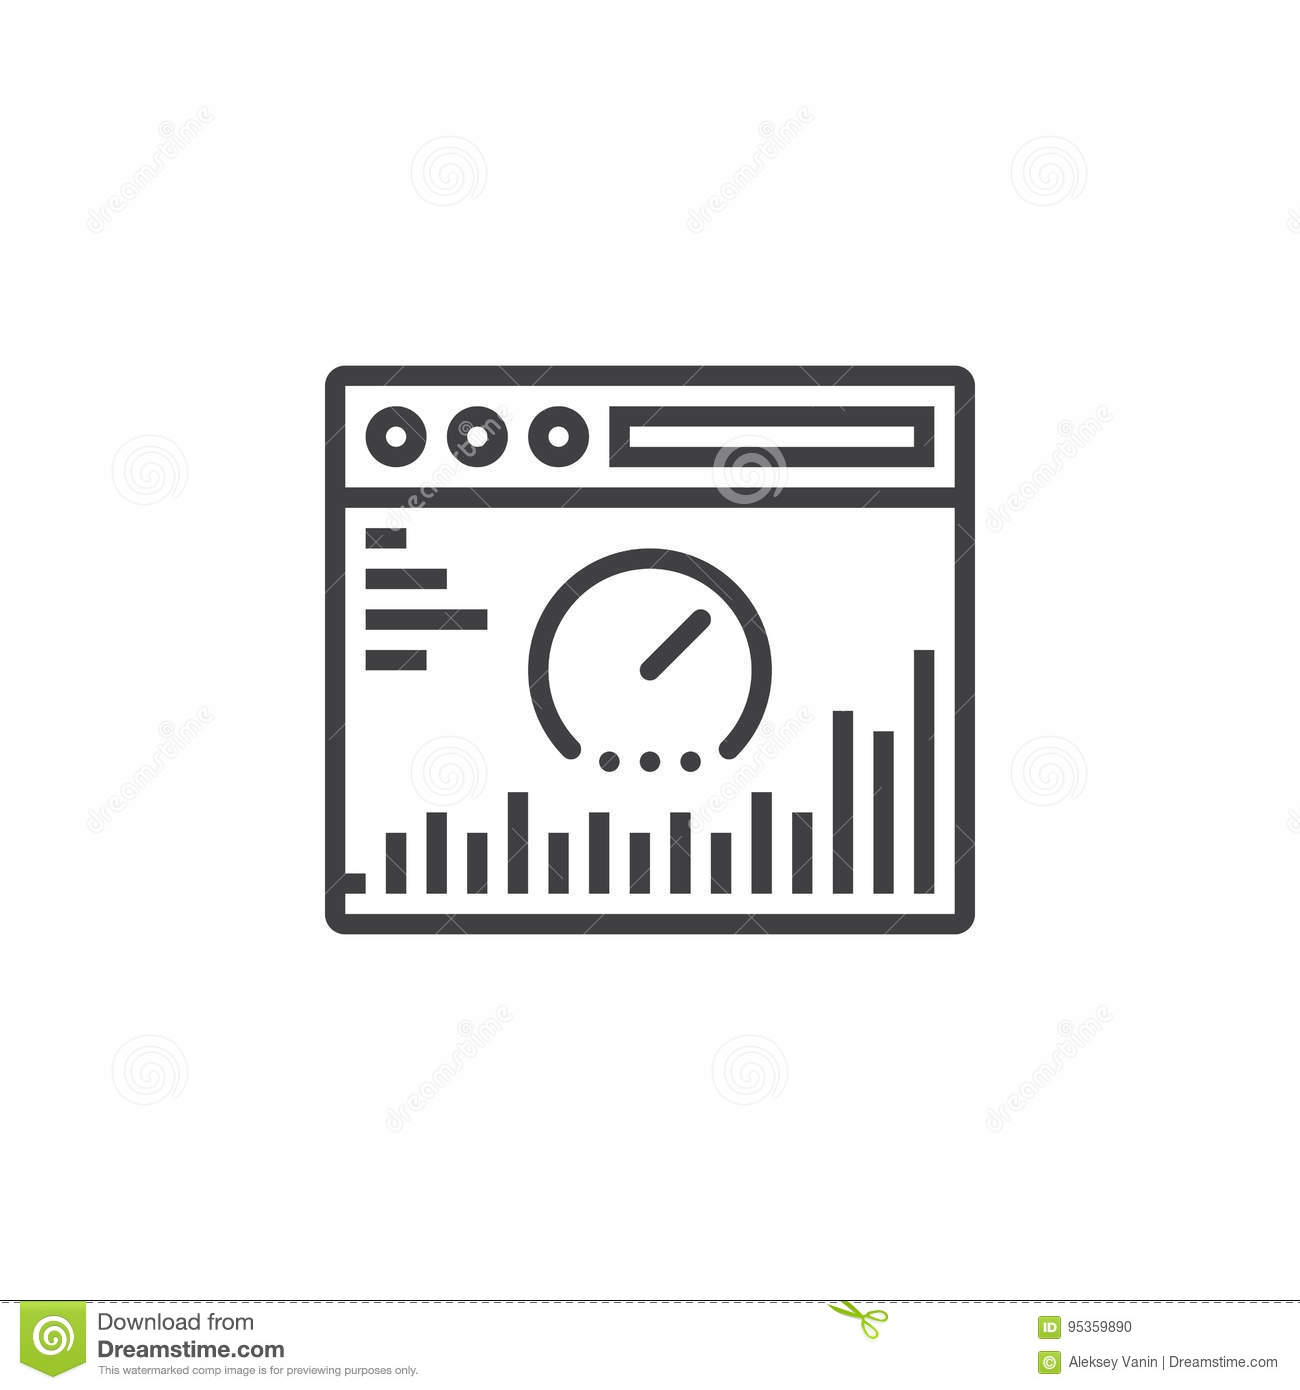 Website analysis line icon, outline vector sign, linear pictogram isolated on white. logo illustration